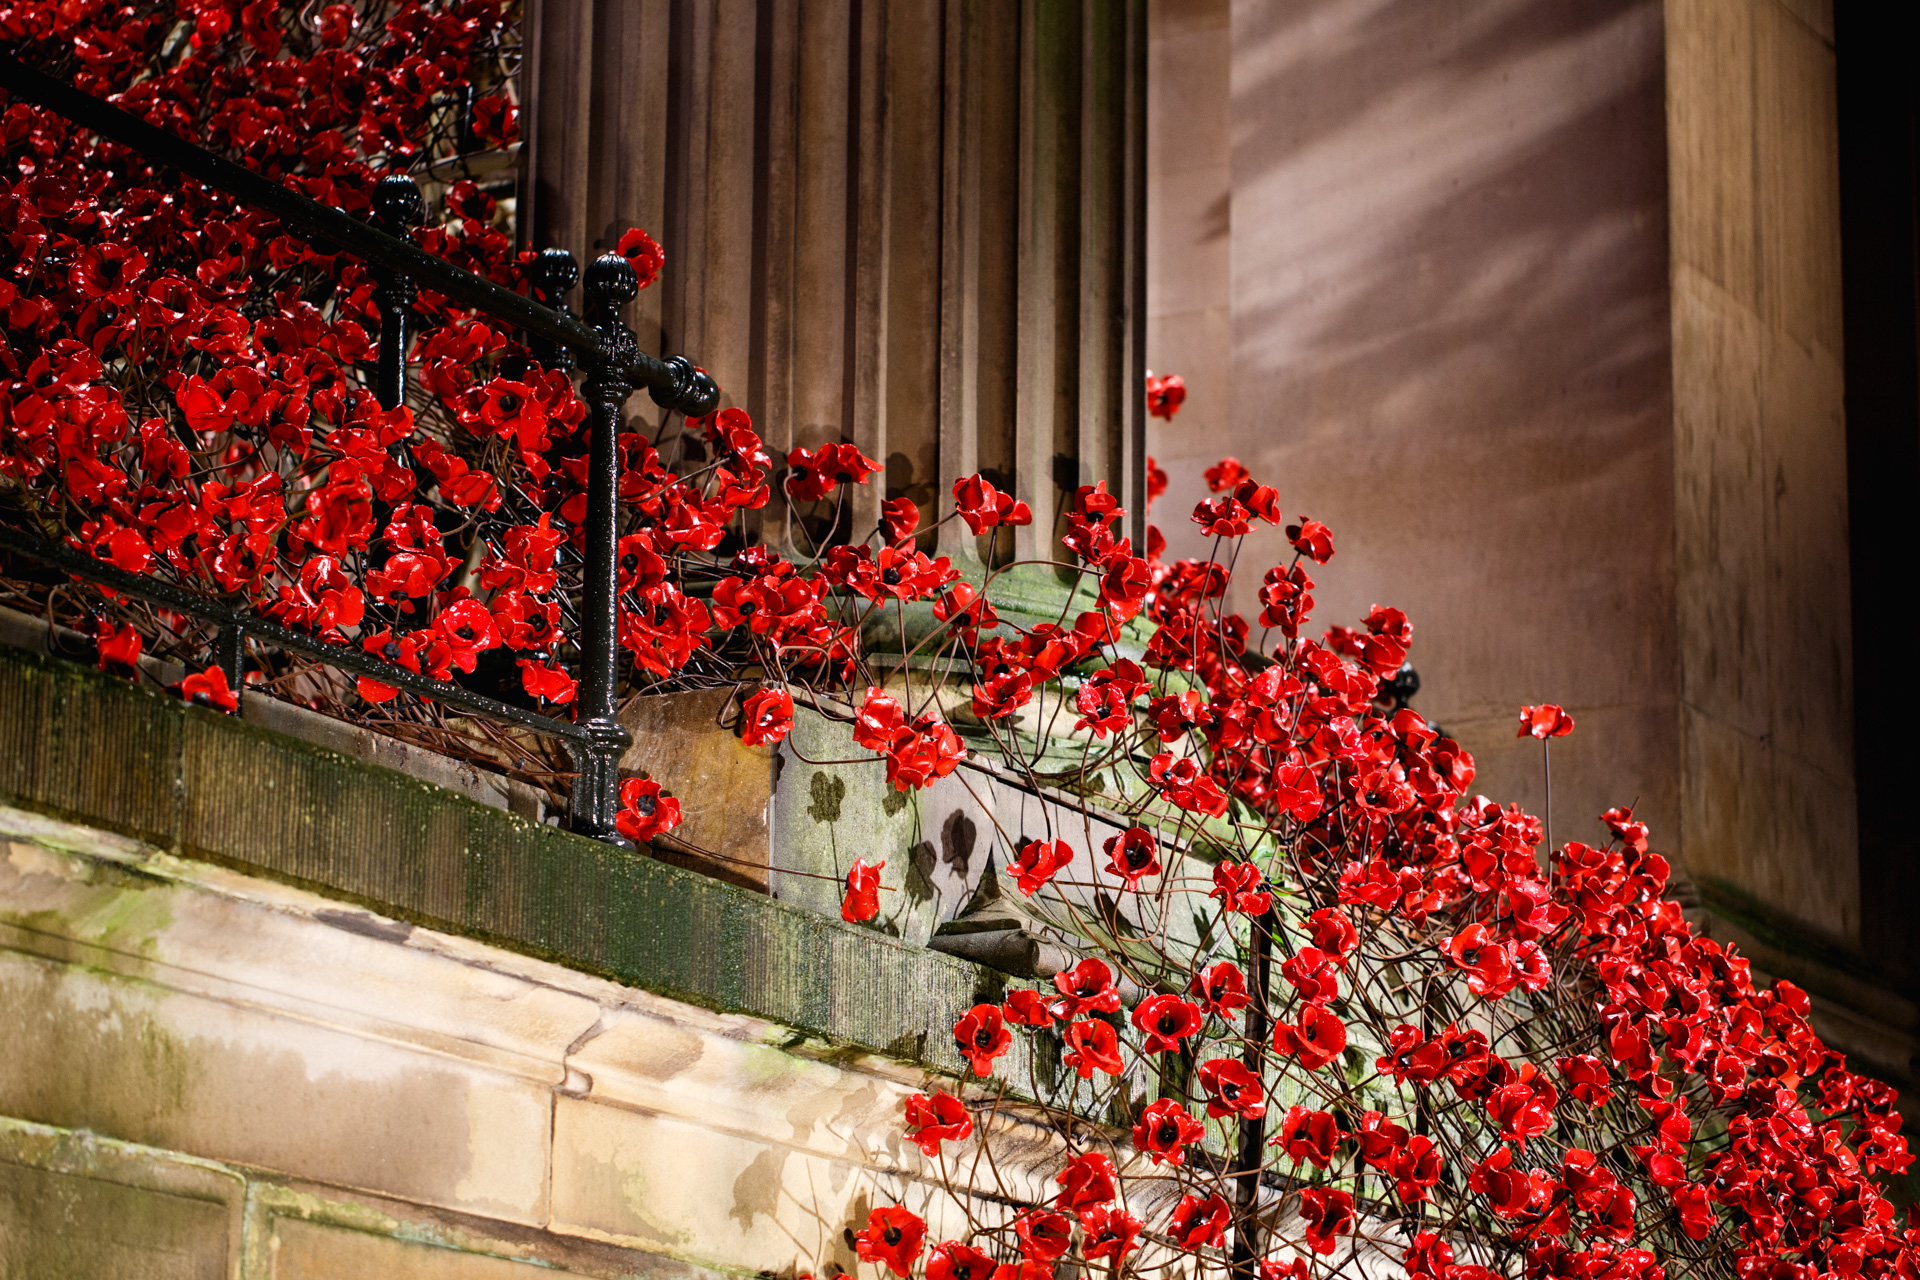 Weeping Window Paul Cummins Tom Piper Liverpool St.George's Hall Andrew Wilson Photography (24).jpg